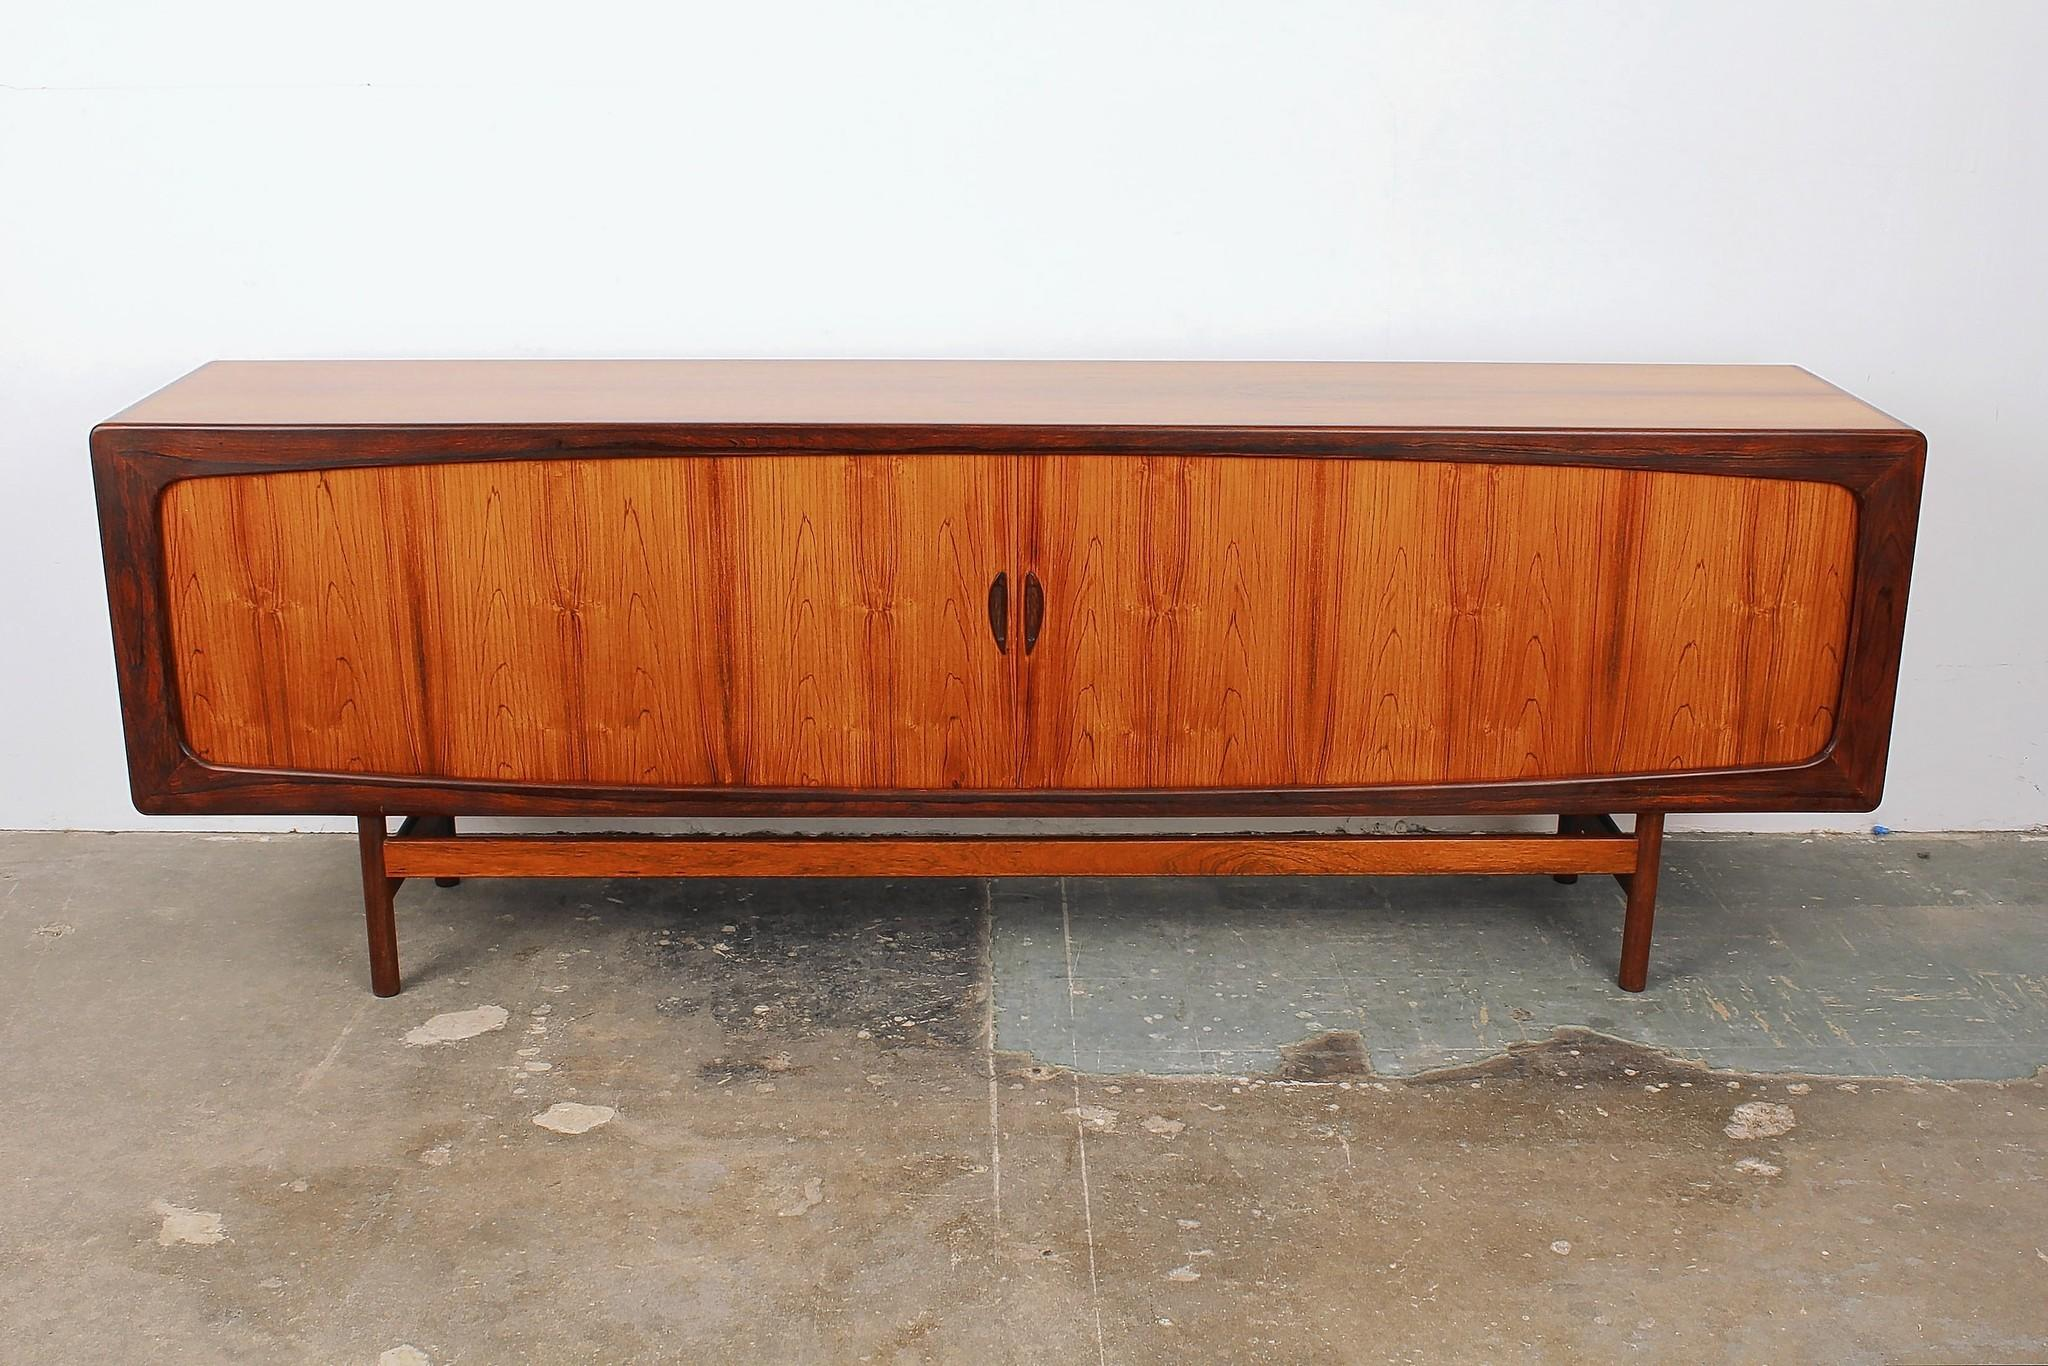 Exhibitor Midcentury LA of West Hollywood is featuring a Danish rosewood sideboard by Arne Vodder from the 1960s.